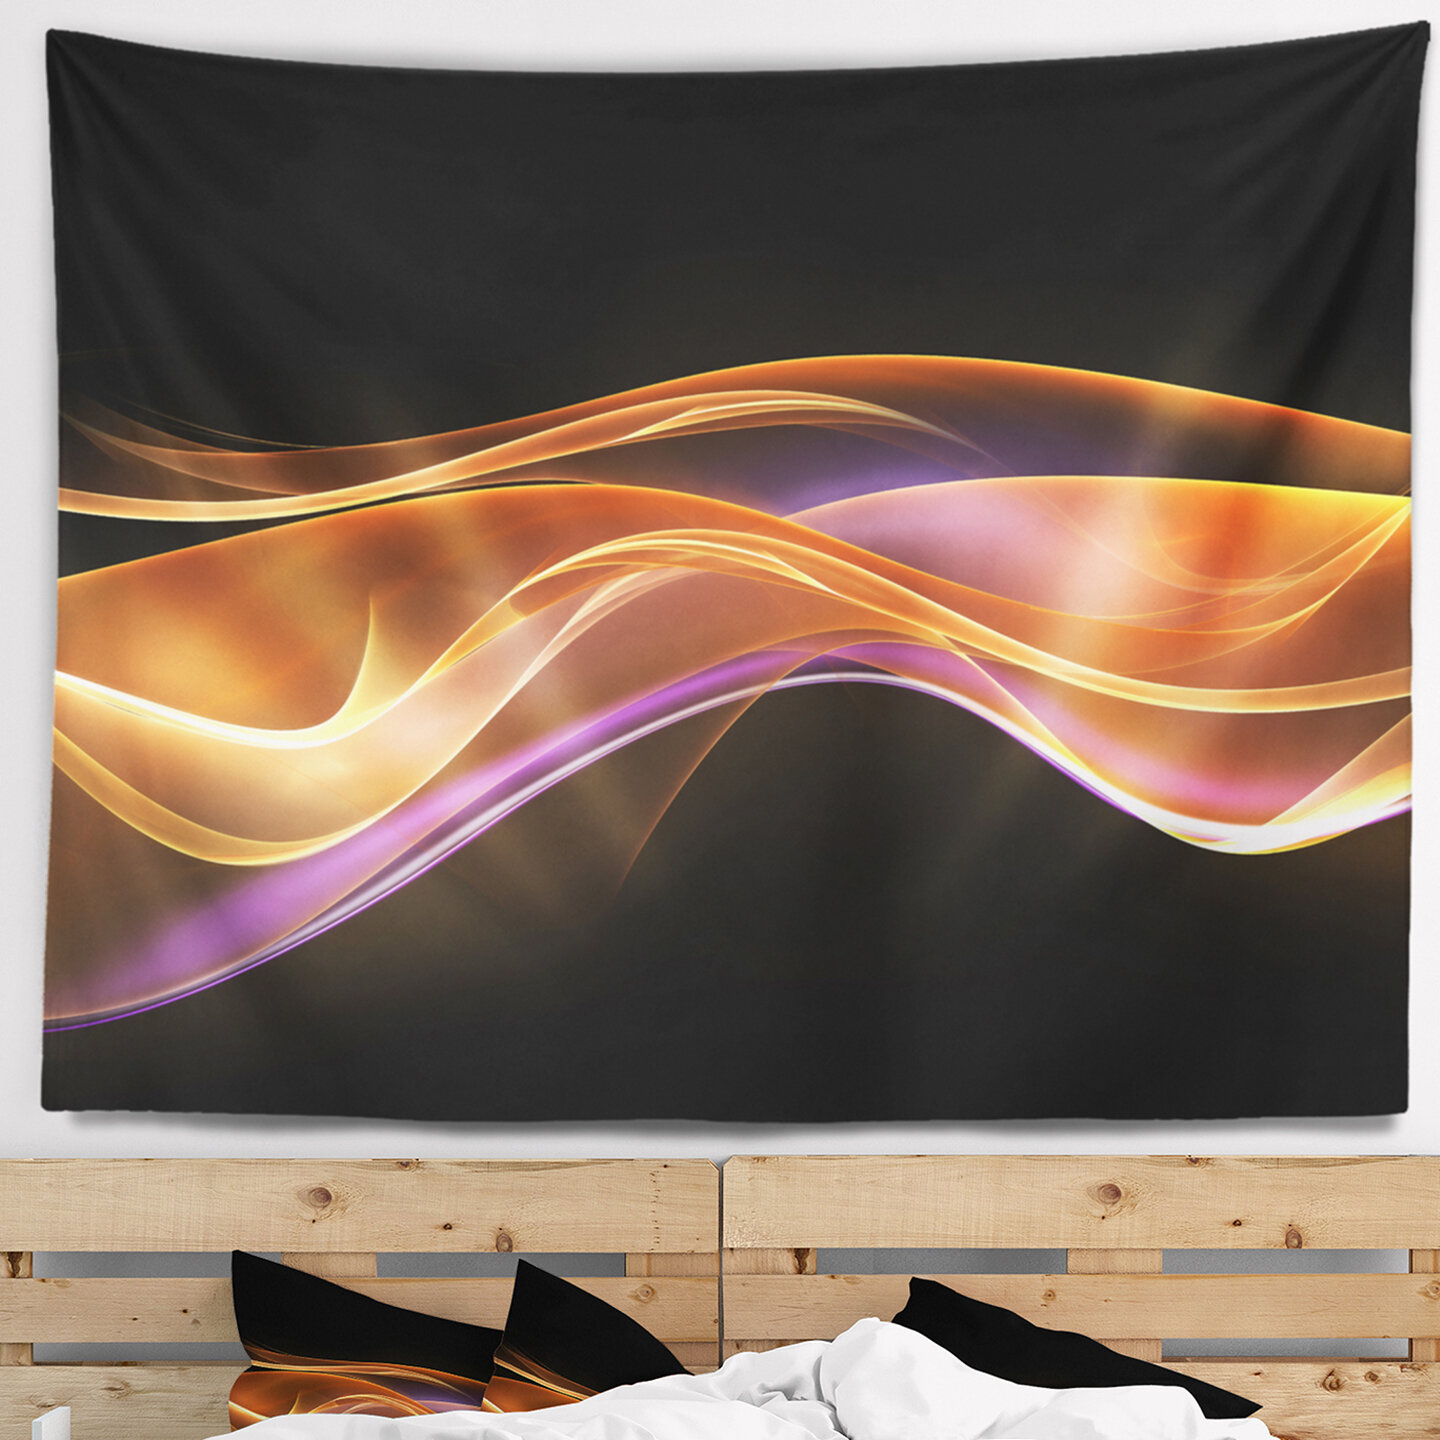 Home Design 3d Gold: East Urban Home Abstract 3D Gold Pink Wave Design Tapestry